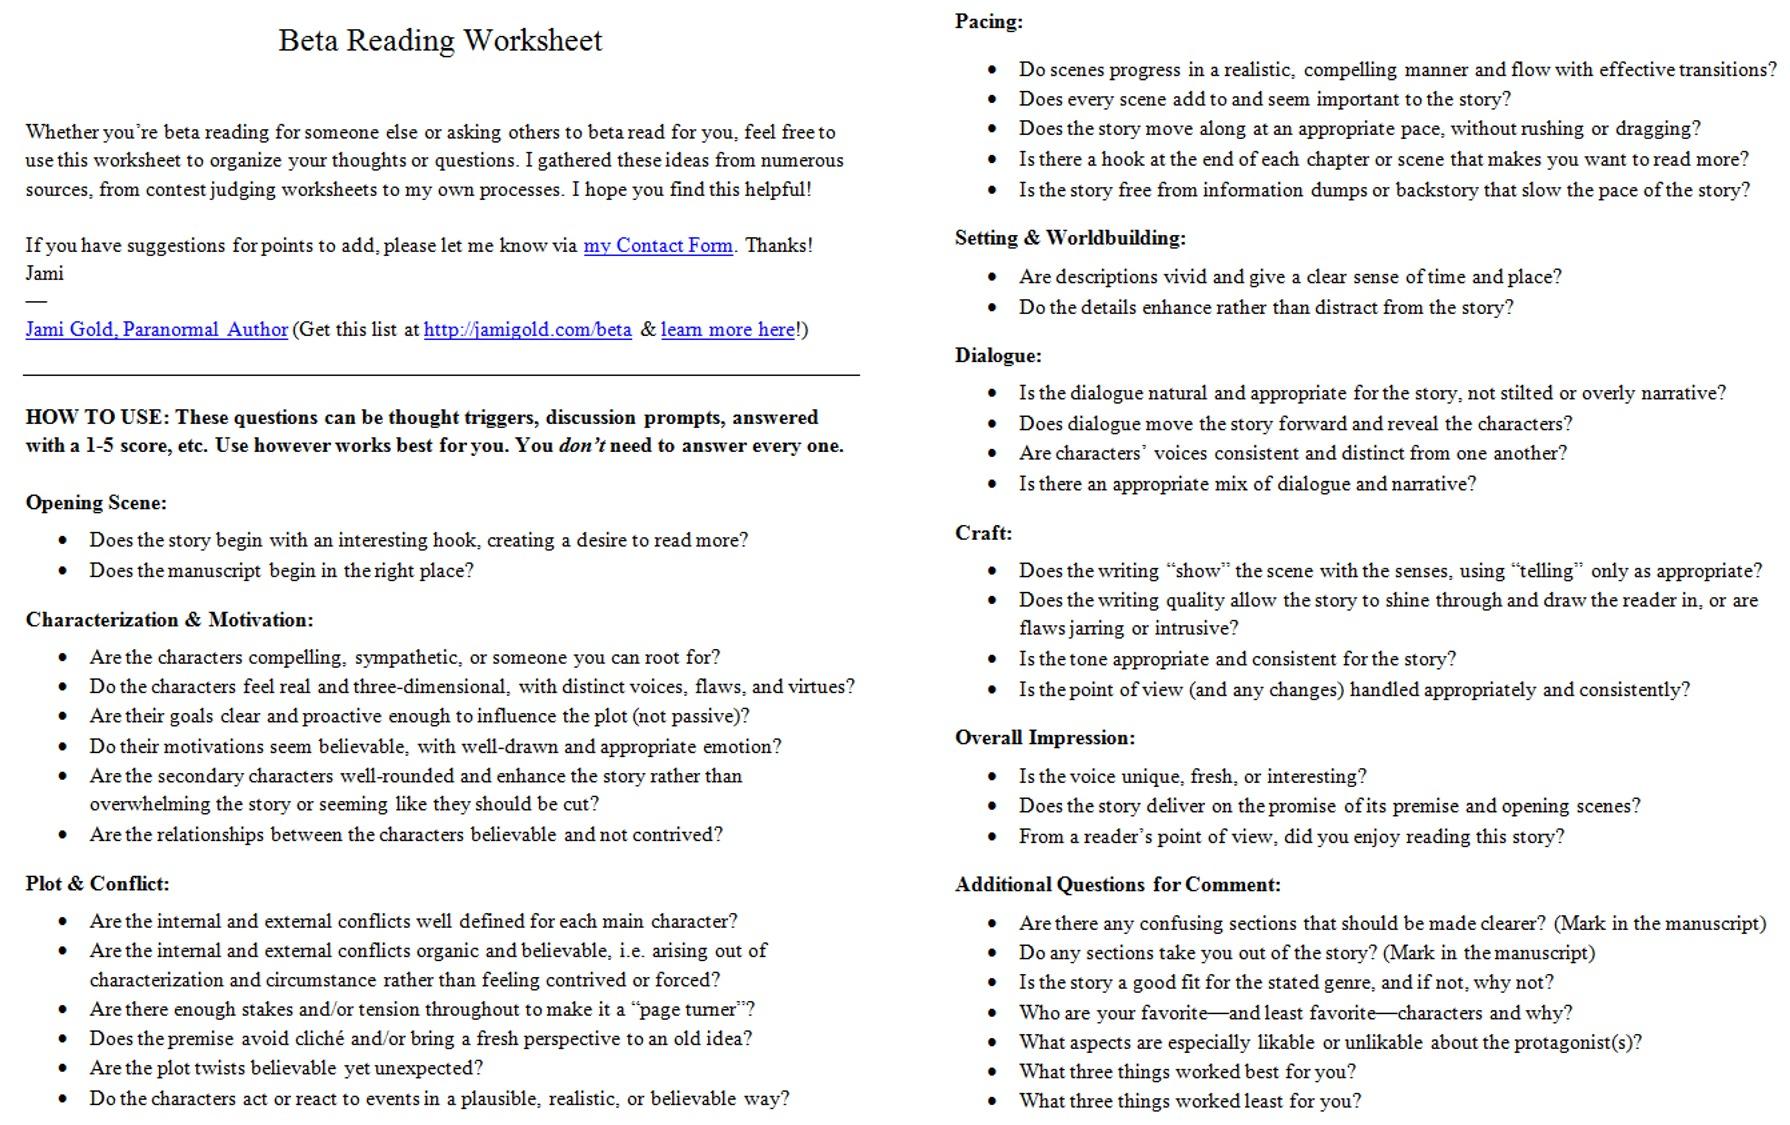 Proatmealus  Gorgeous Worksheets For Writers  Jami Gold Paranormal Author With Fascinating Screen Shot Of The Twopage Beta Reading Worksheet With Beautiful Free Smart Goal Setting Worksheet Also Worksheet In Science In Addition Worksheets For Number  And Coordinate Pictures Worksheets As Well As Basic Sentence Structure Worksheets Additionally Geology For Kids Worksheets From Jamigoldcom With Proatmealus  Fascinating Worksheets For Writers  Jami Gold Paranormal Author With Beautiful Screen Shot Of The Twopage Beta Reading Worksheet And Gorgeous Free Smart Goal Setting Worksheet Also Worksheet In Science In Addition Worksheets For Number  From Jamigoldcom